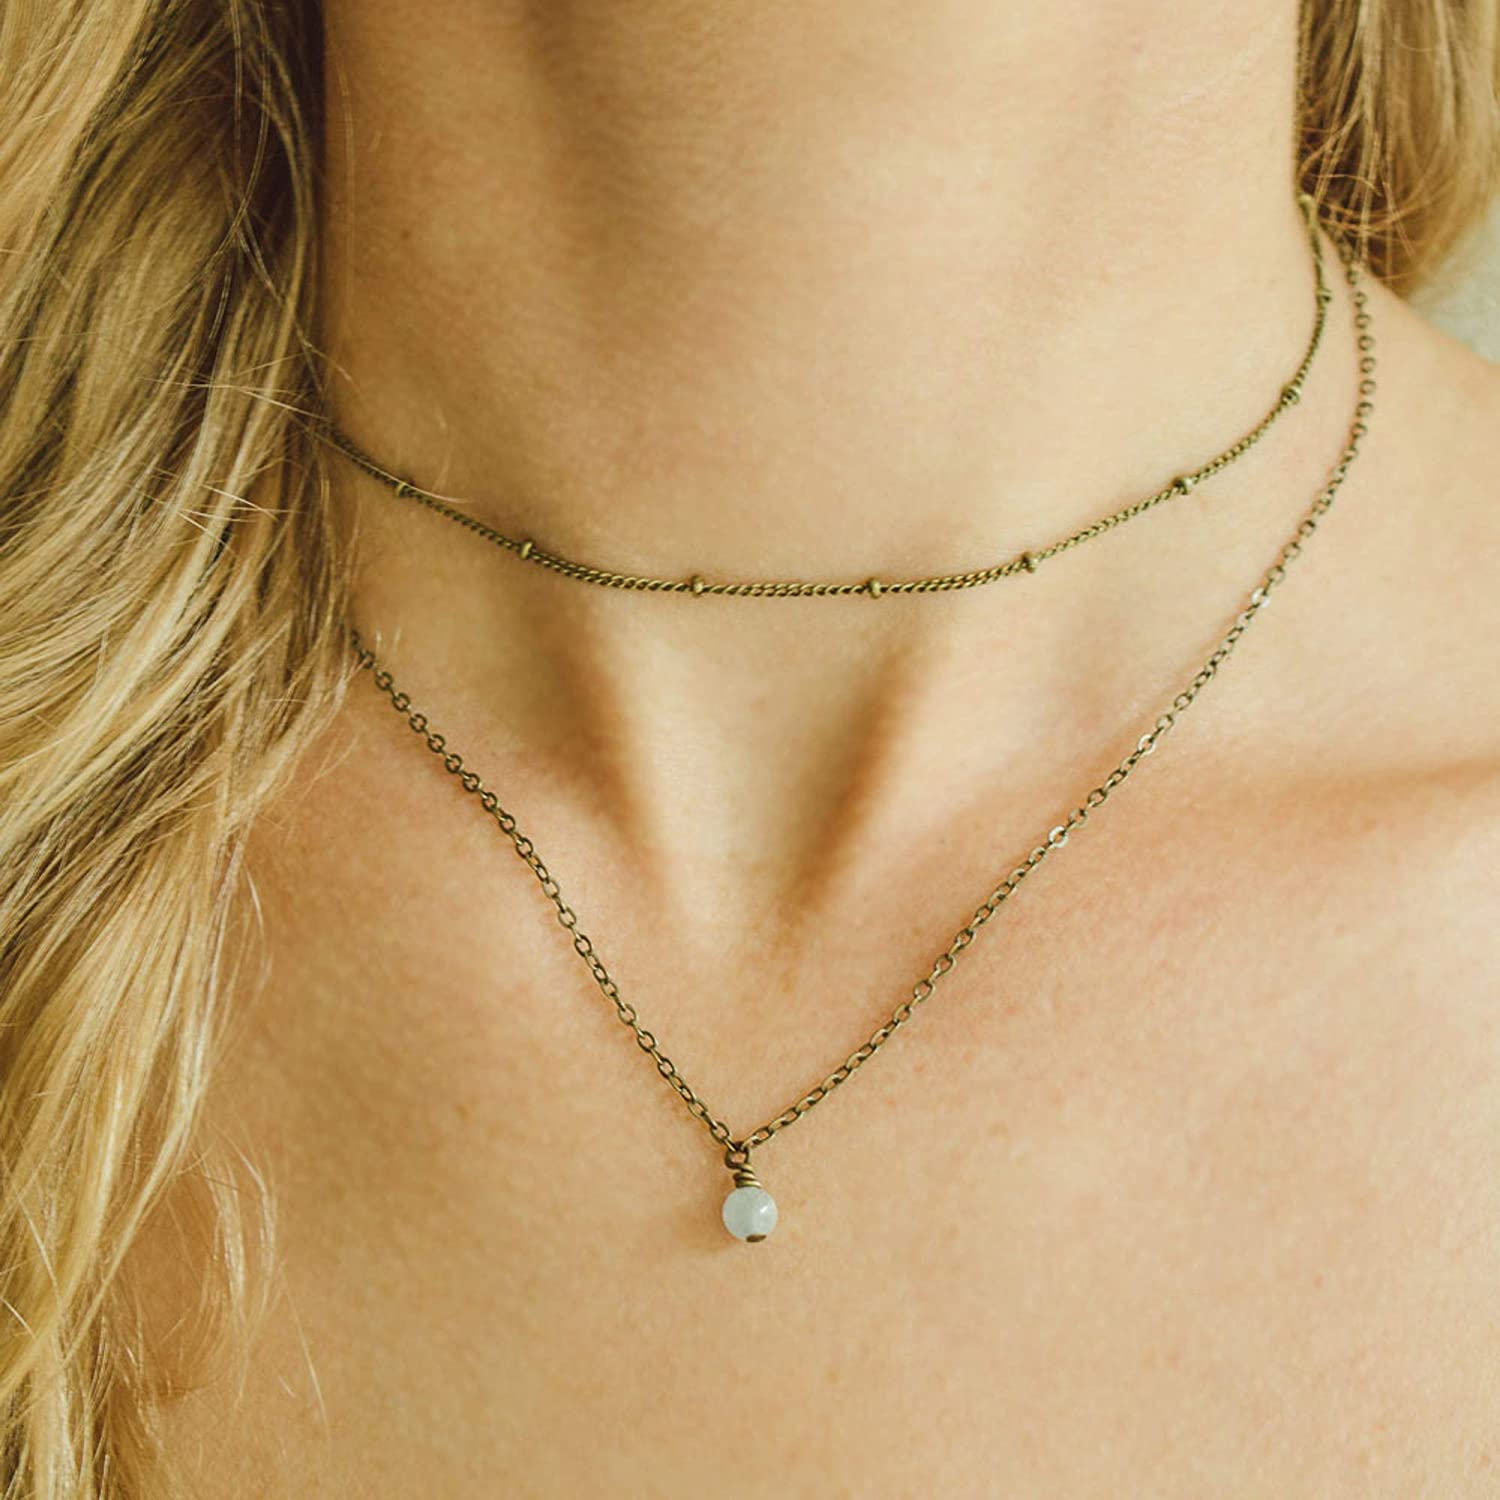 Leather Necklace March Birthstone Natural Blue Aquamarine Leather Choker Adjustable Leather Choker Necklace